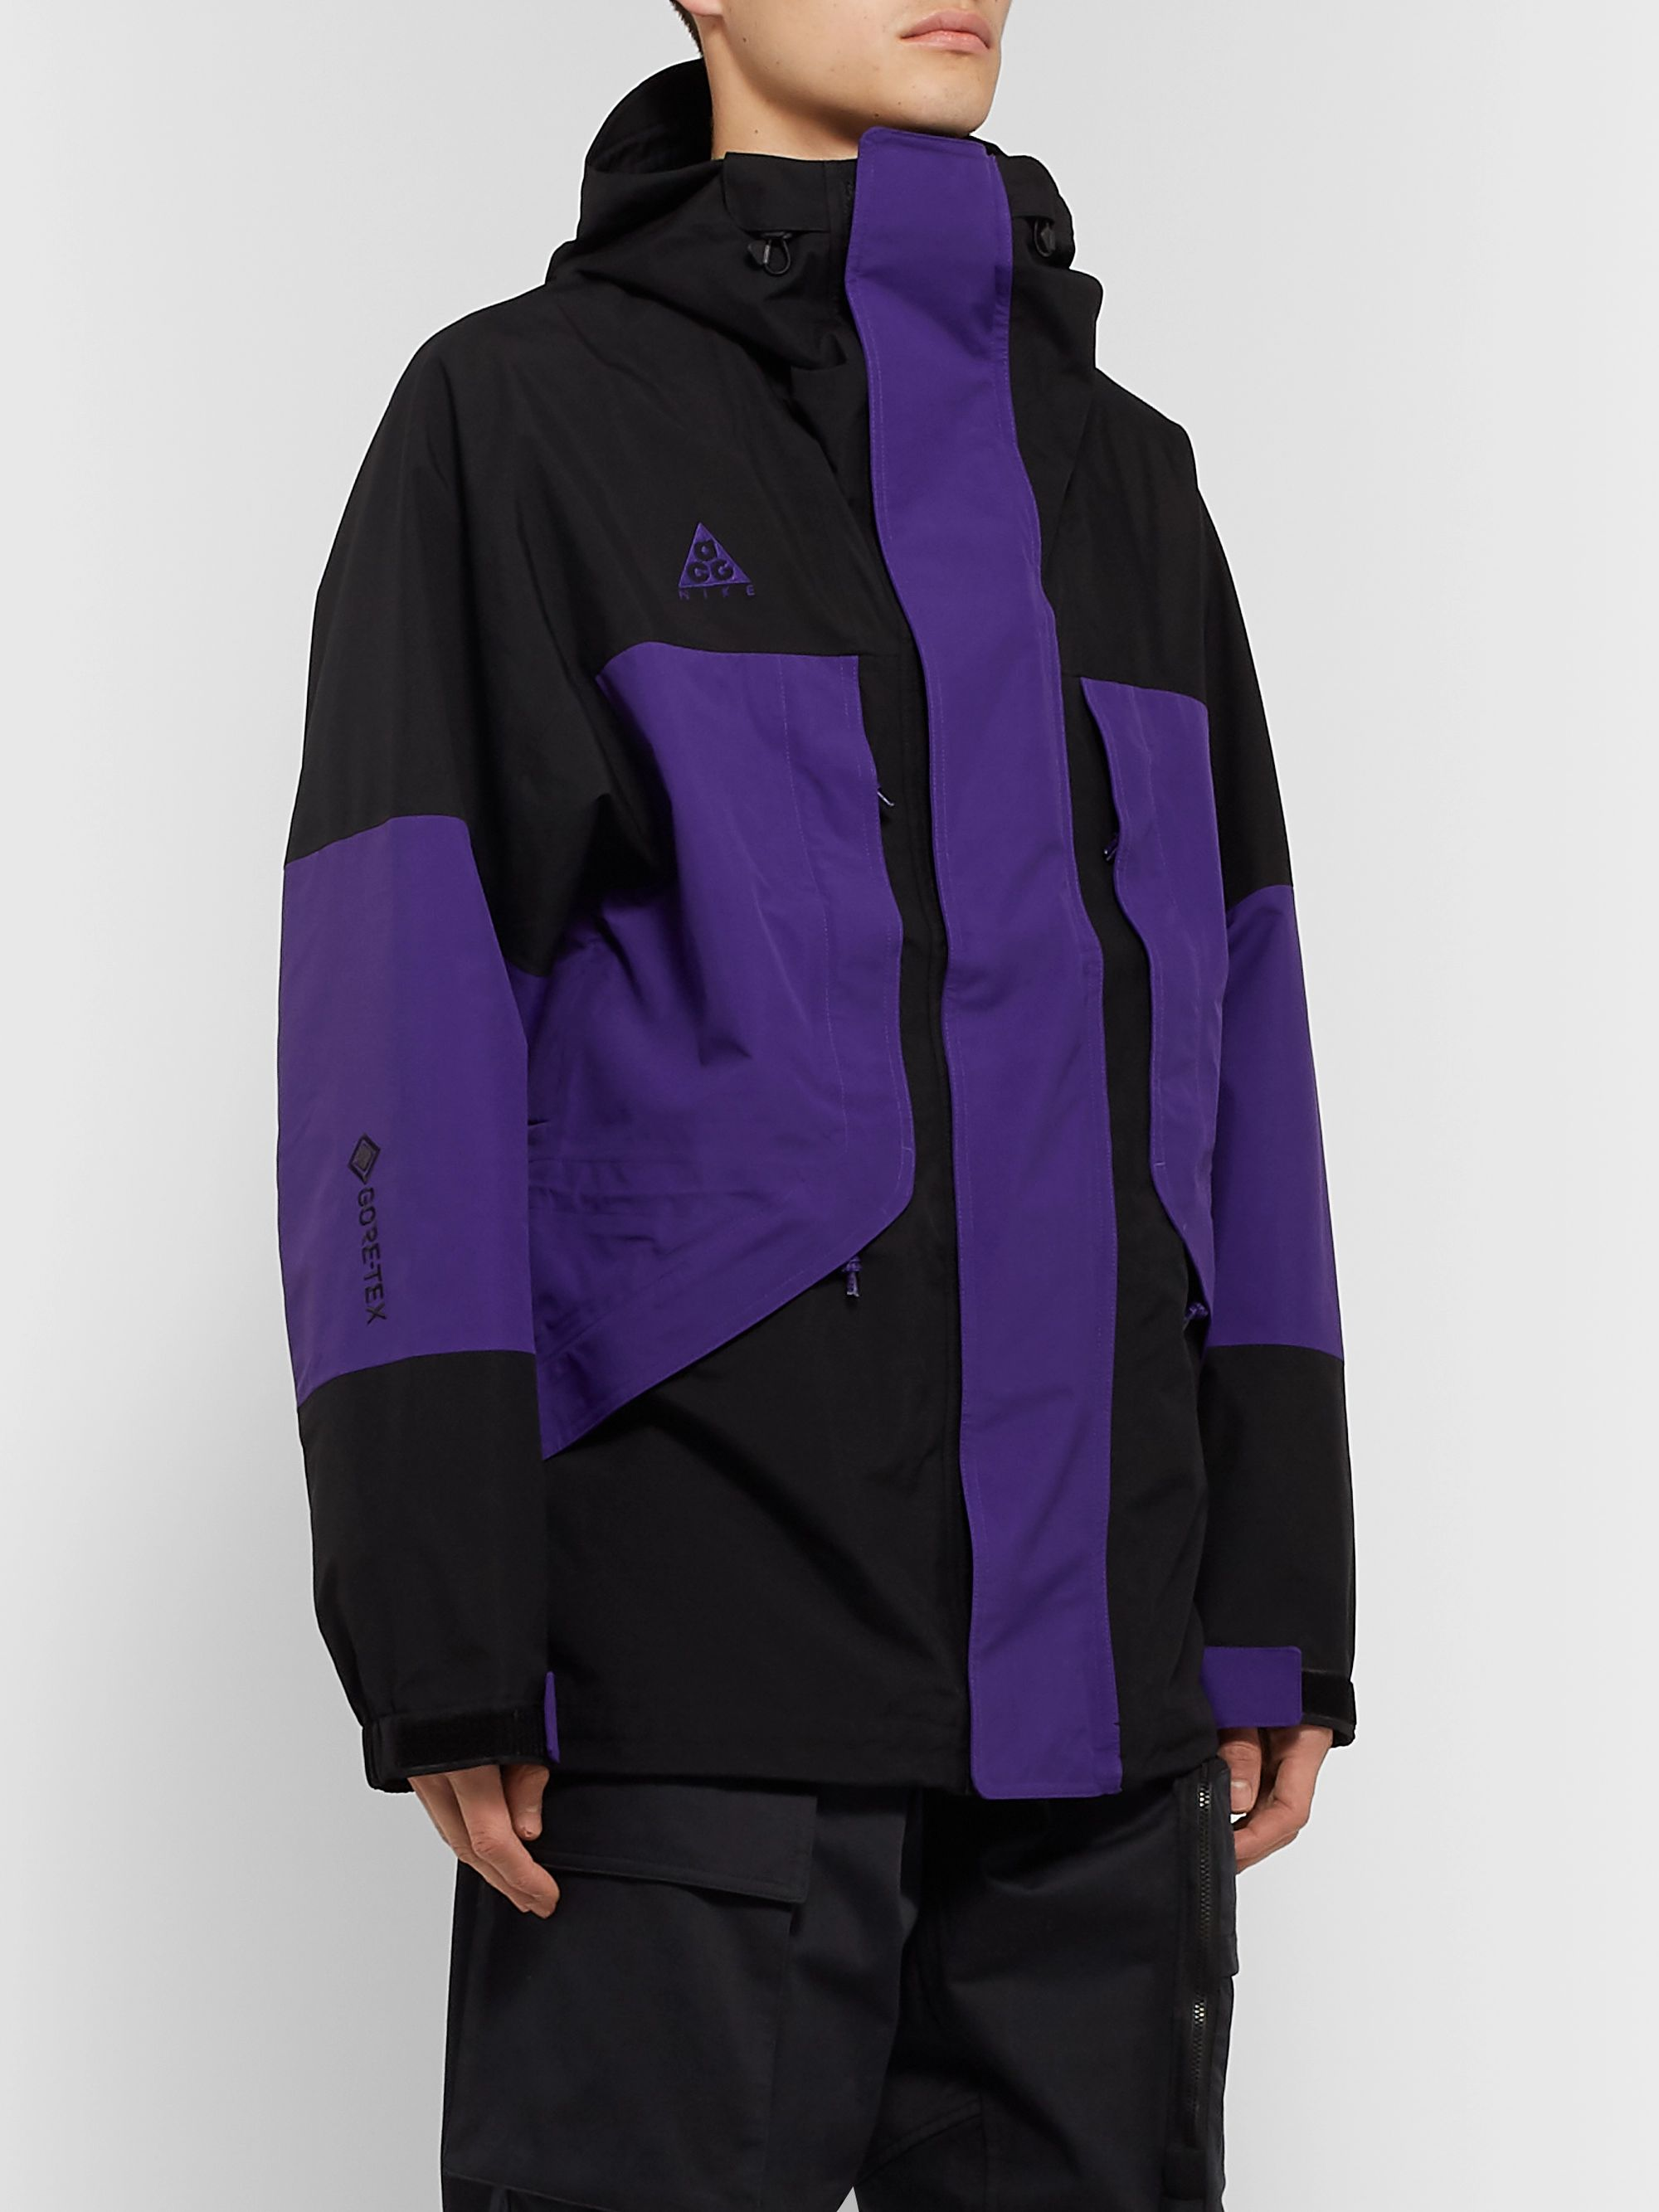 ACG NRG Logo Embroidered Colour Block GORE TEX Hooded Jacket